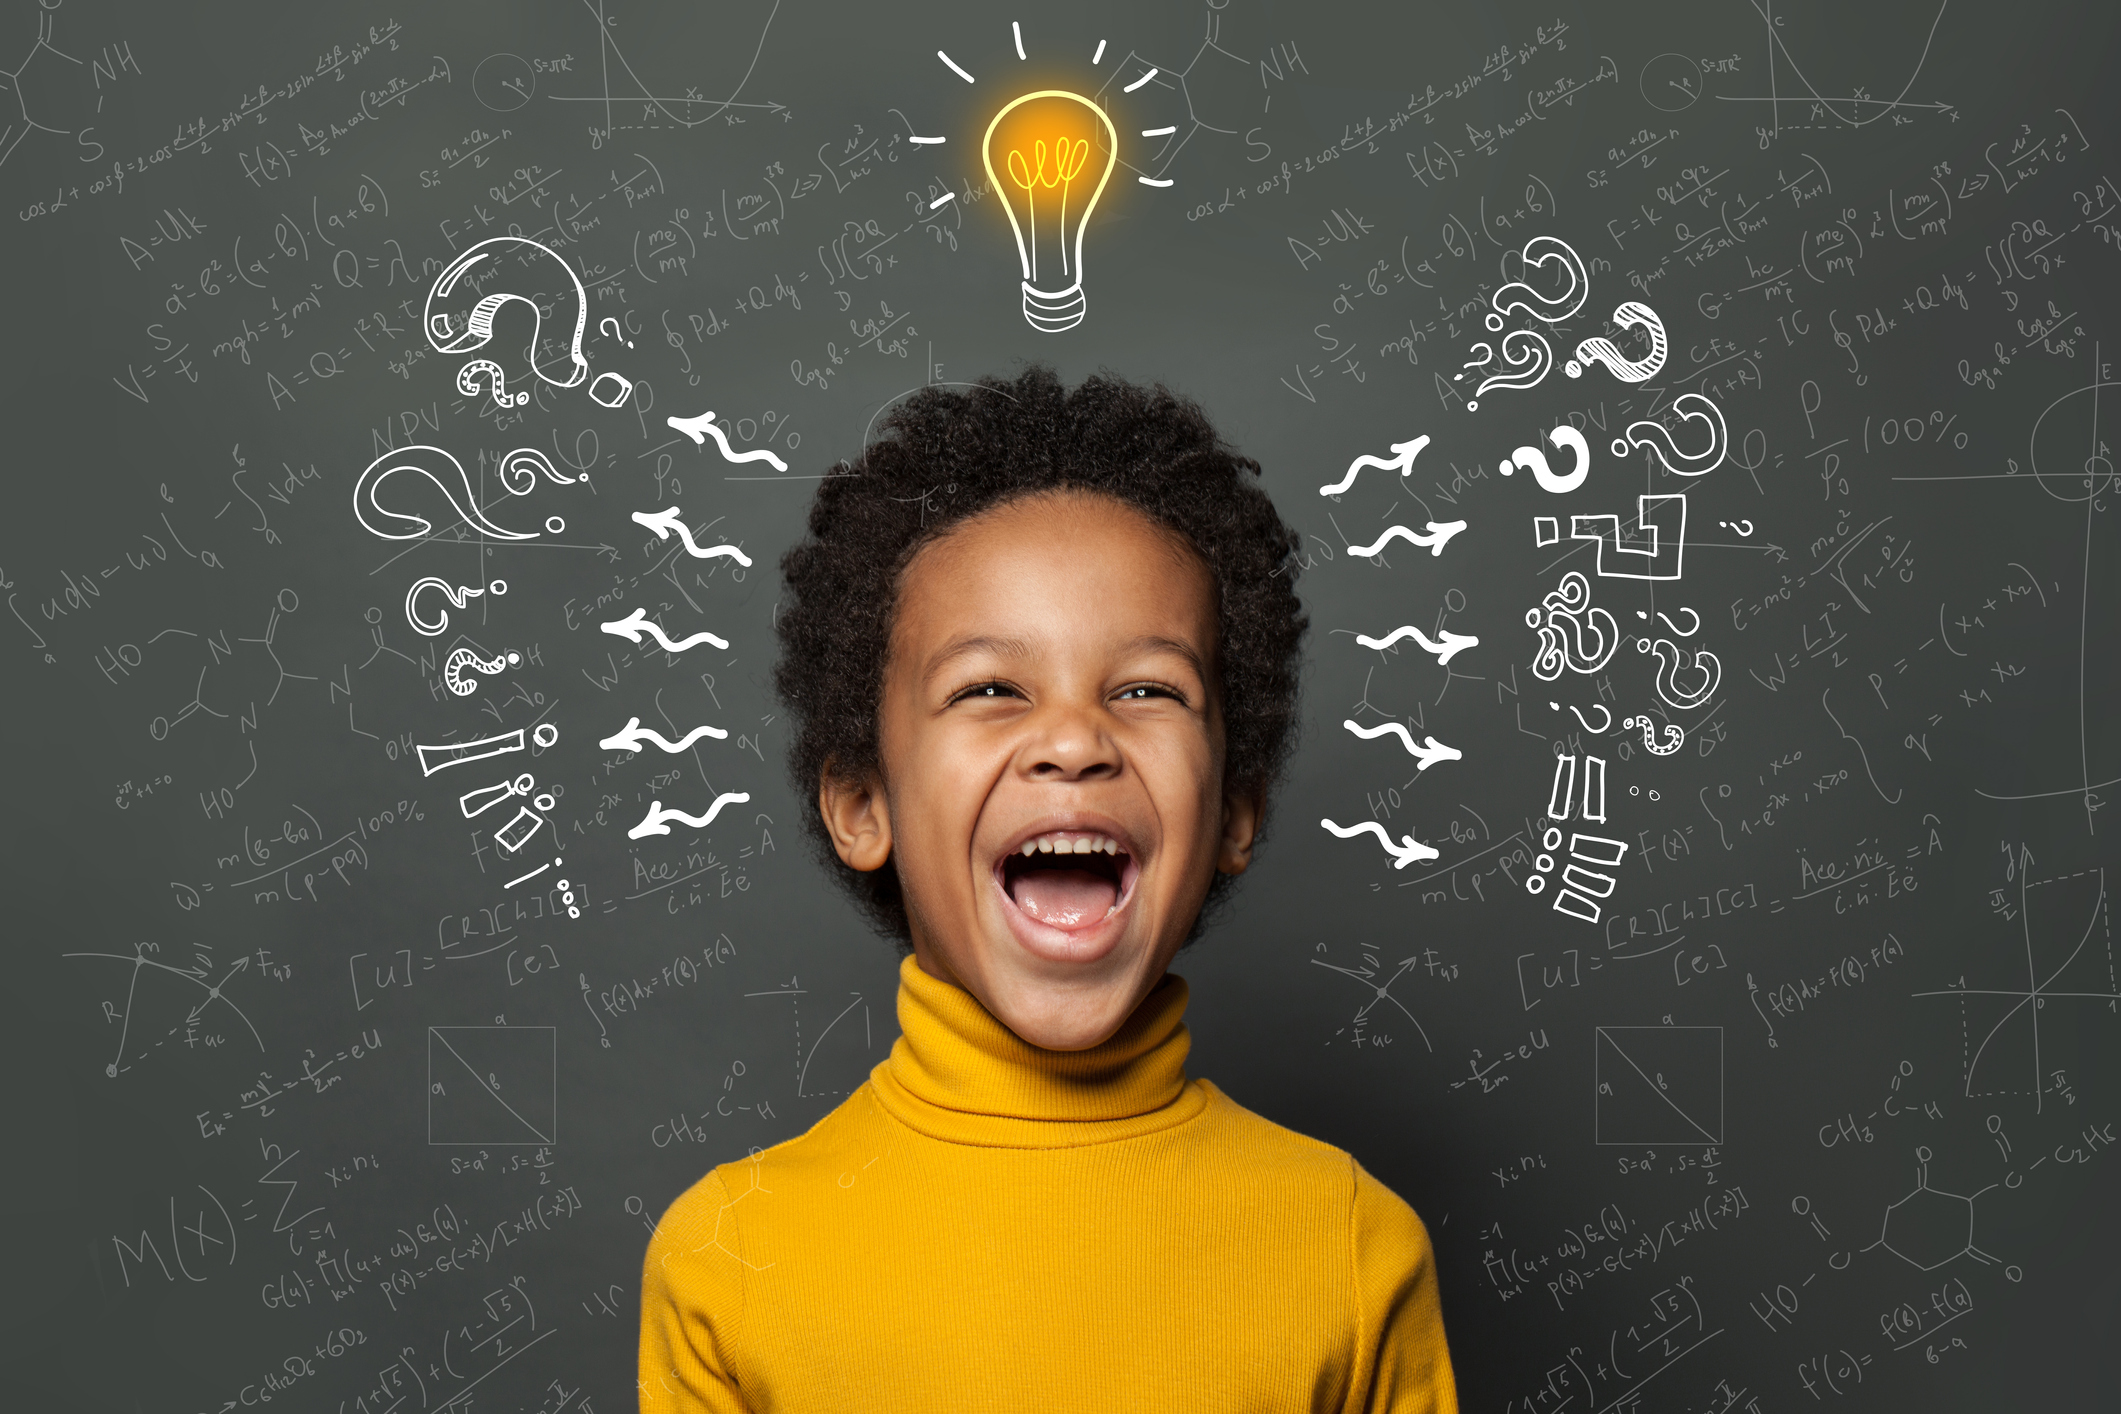 Smart black kid student with lightbulb on blackboard background. Brainstorming and idea concept